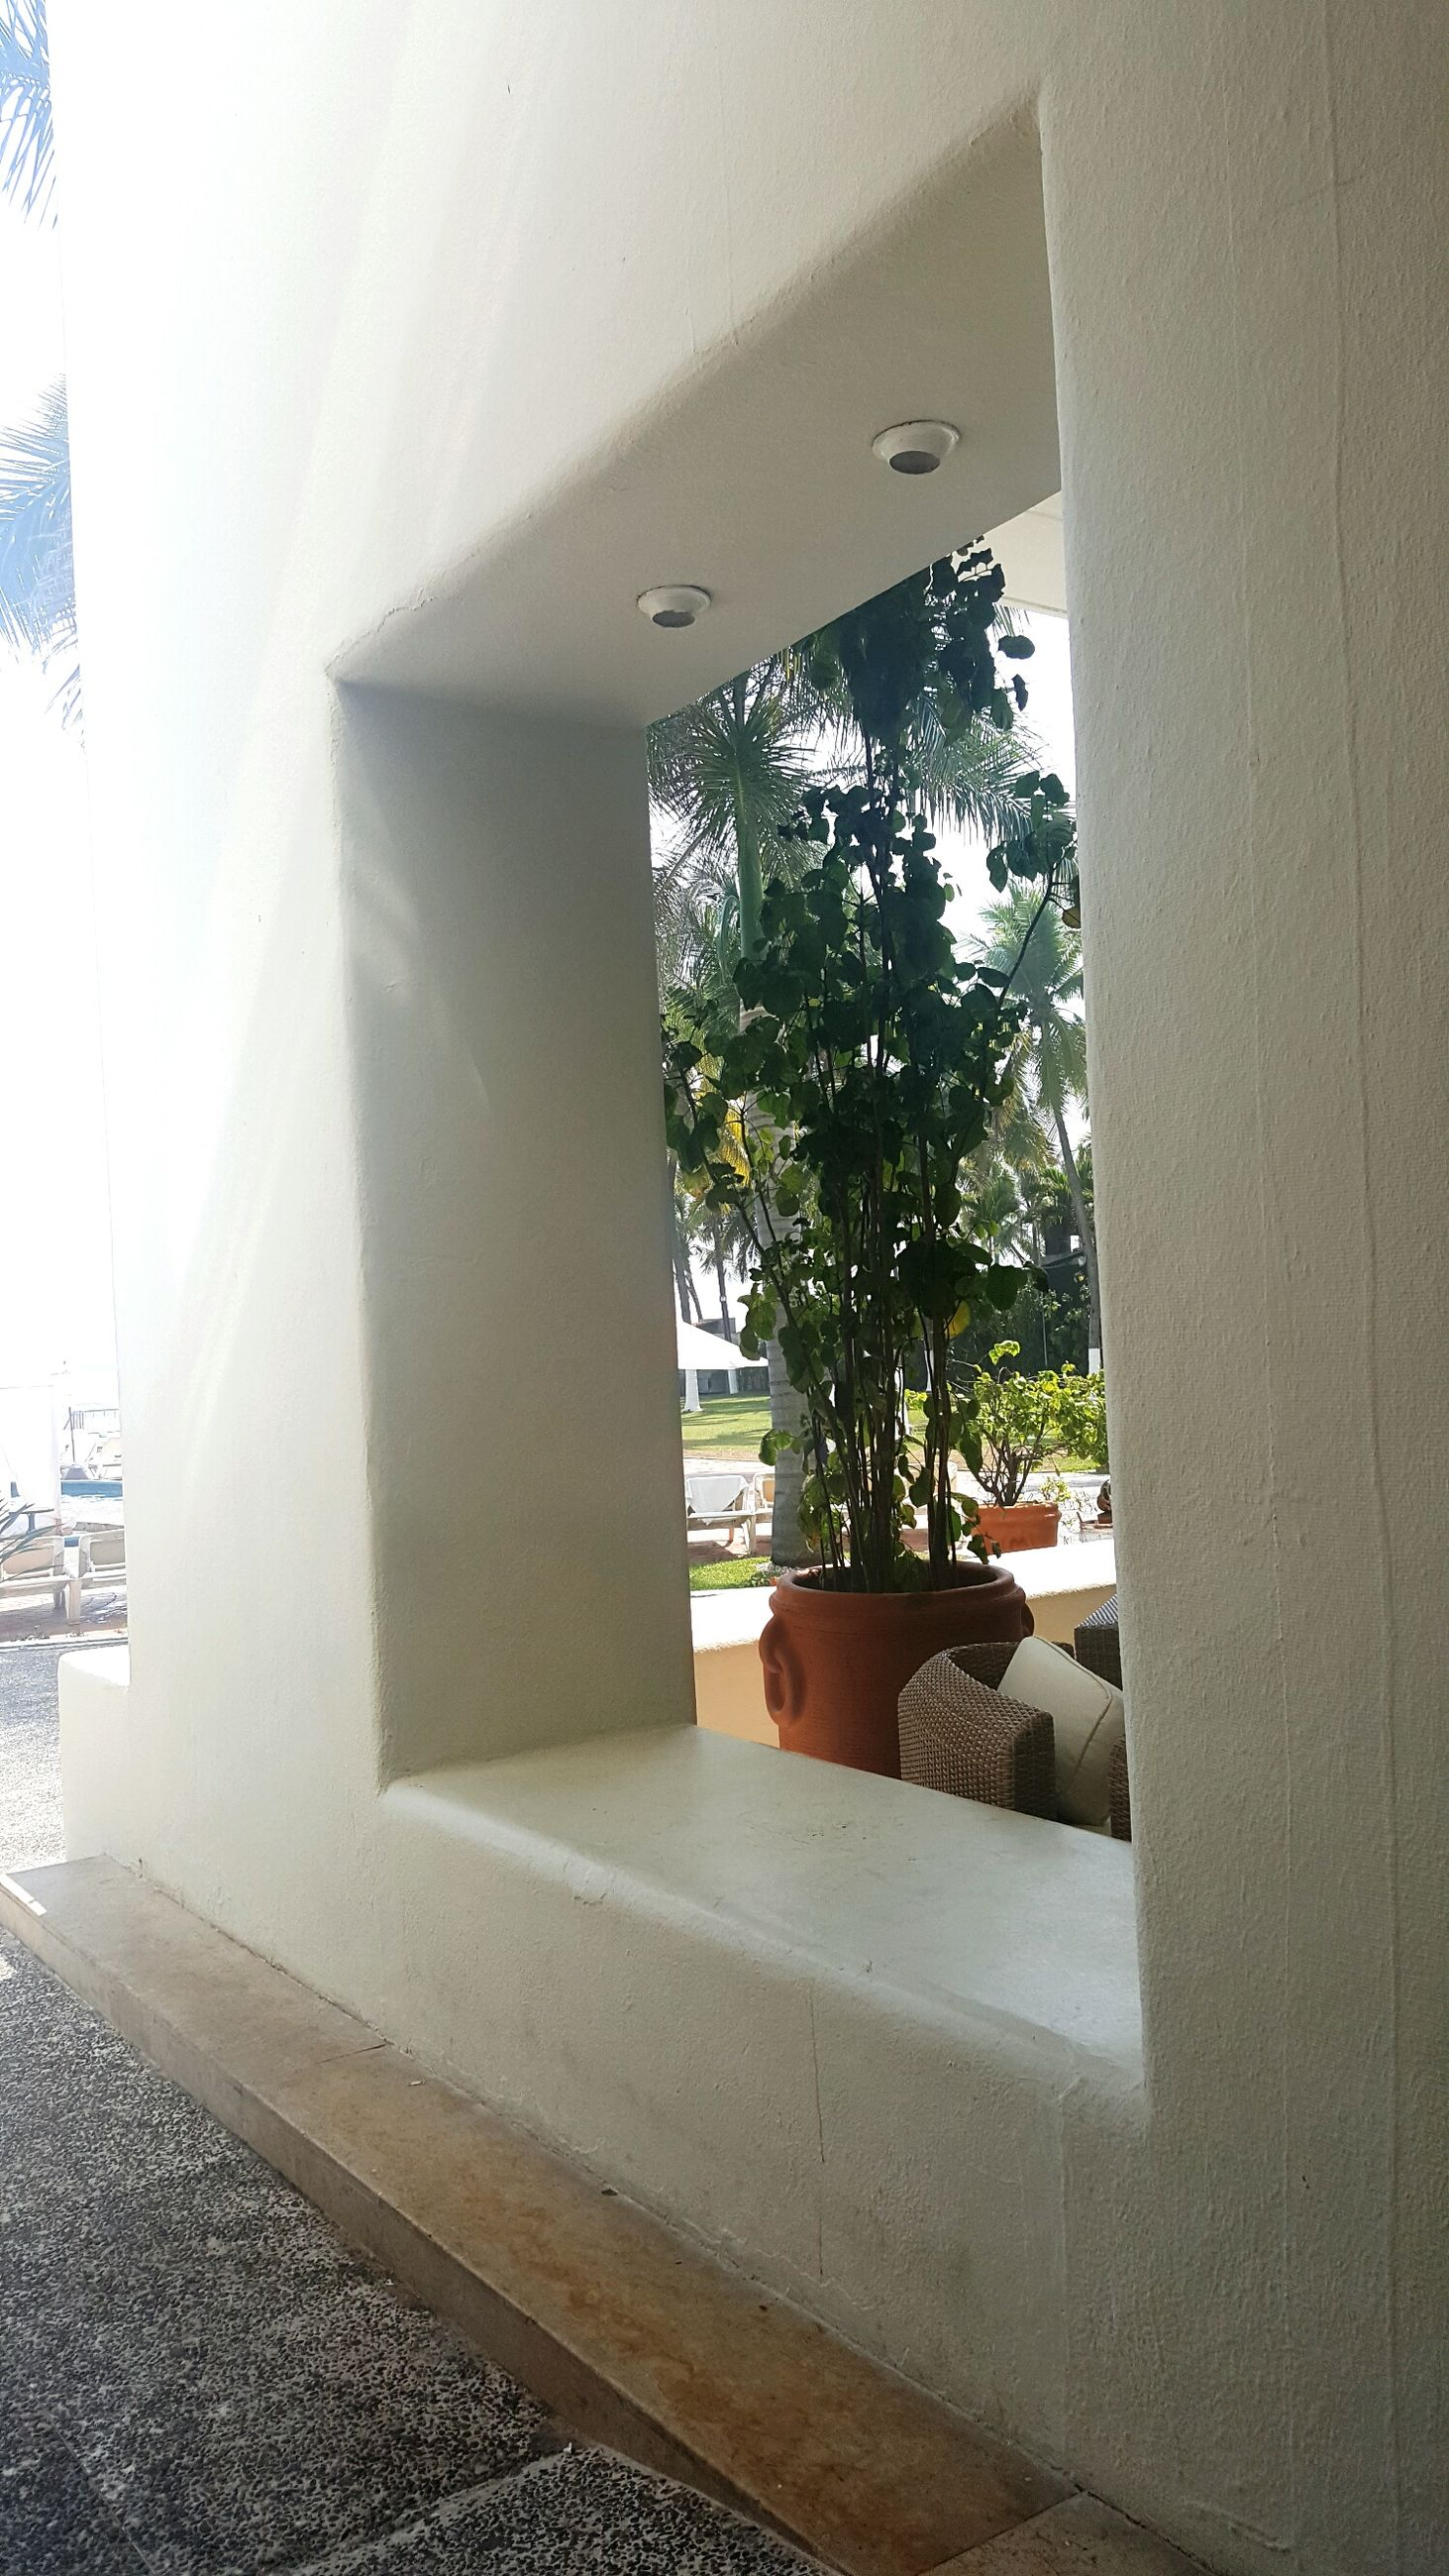 indoors, architecture, built structure, window, building exterior, sunlight, tree, wall - building feature, building, house, day, home interior, door, glass - material, shadow, empty, wall, entrance, absence, no people